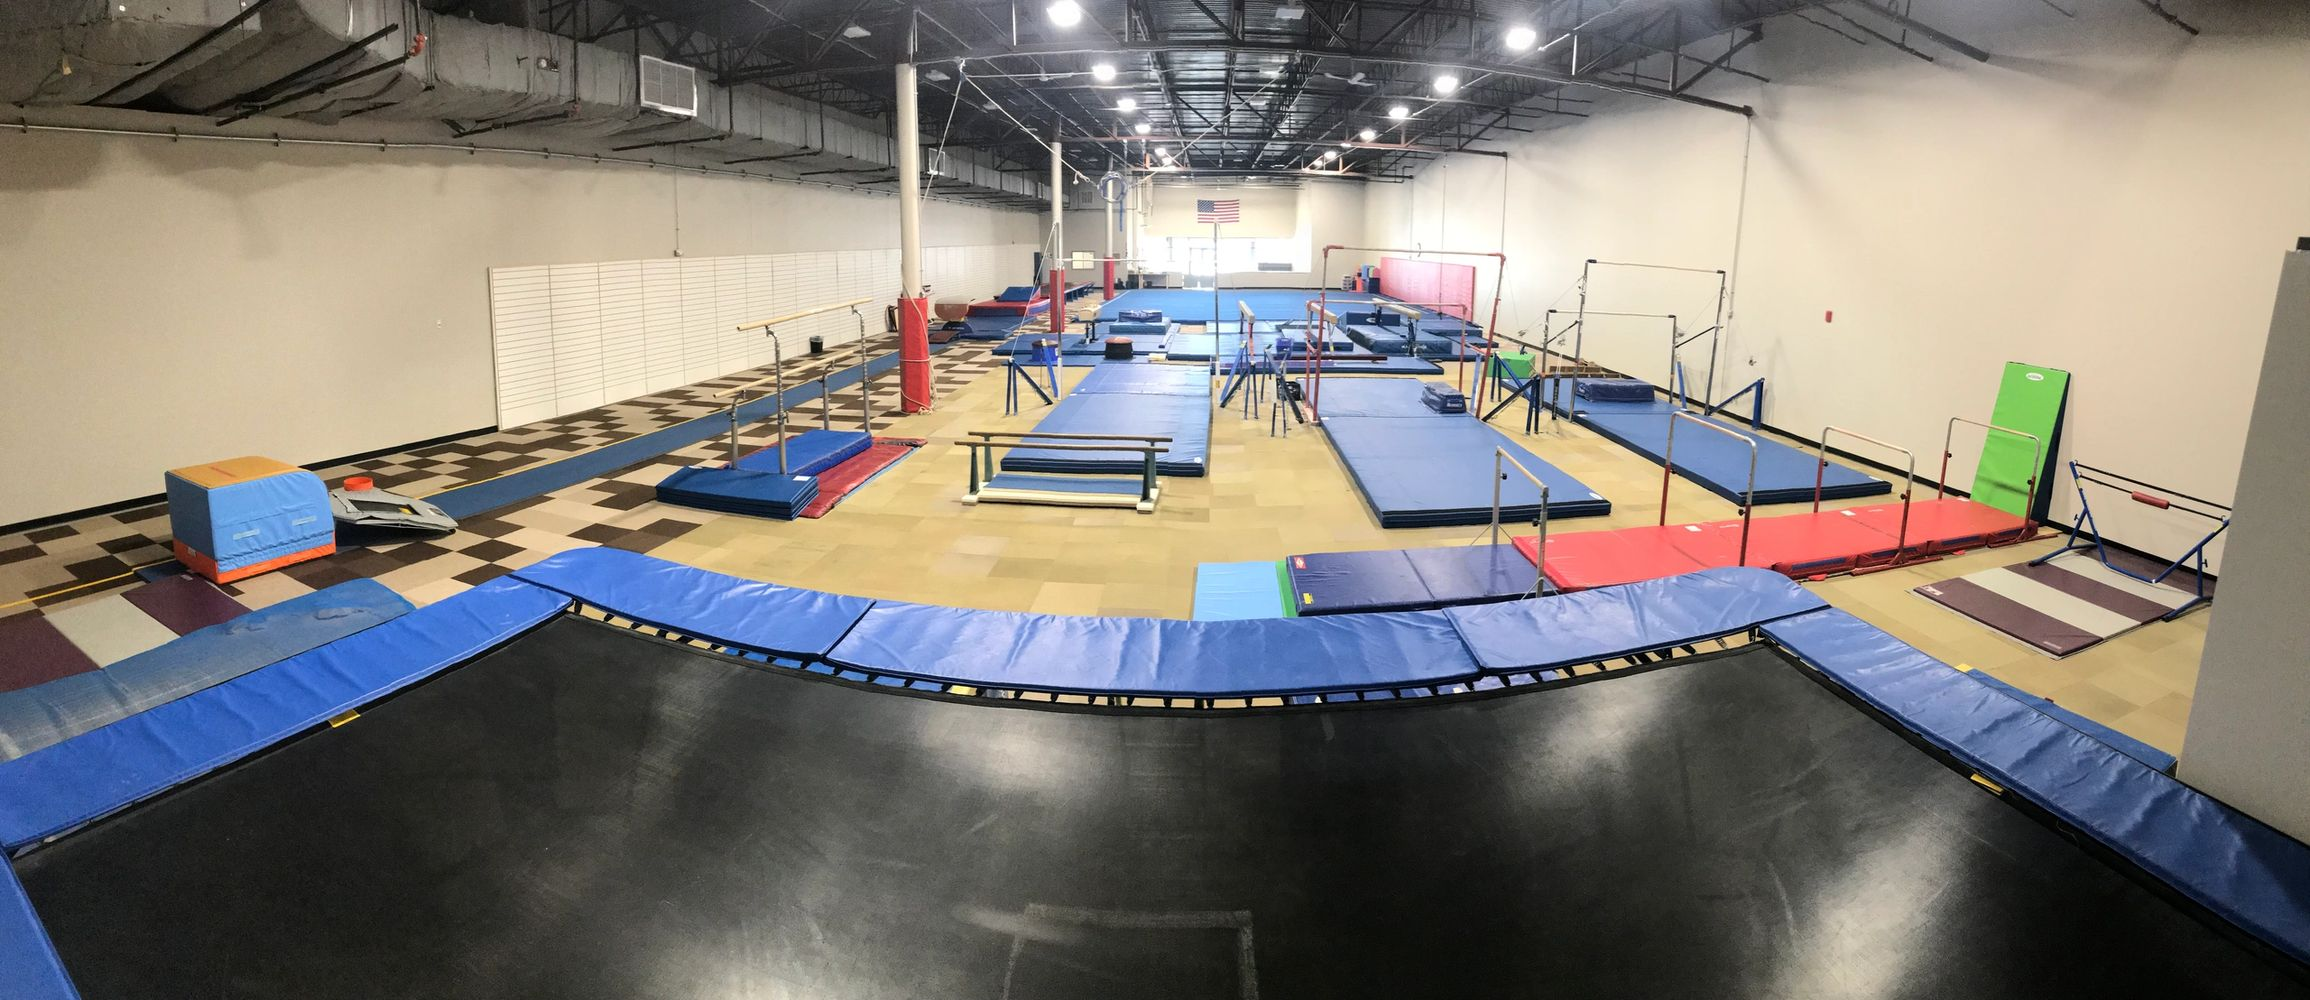 Southern New Hampshire Gymnastics Academy